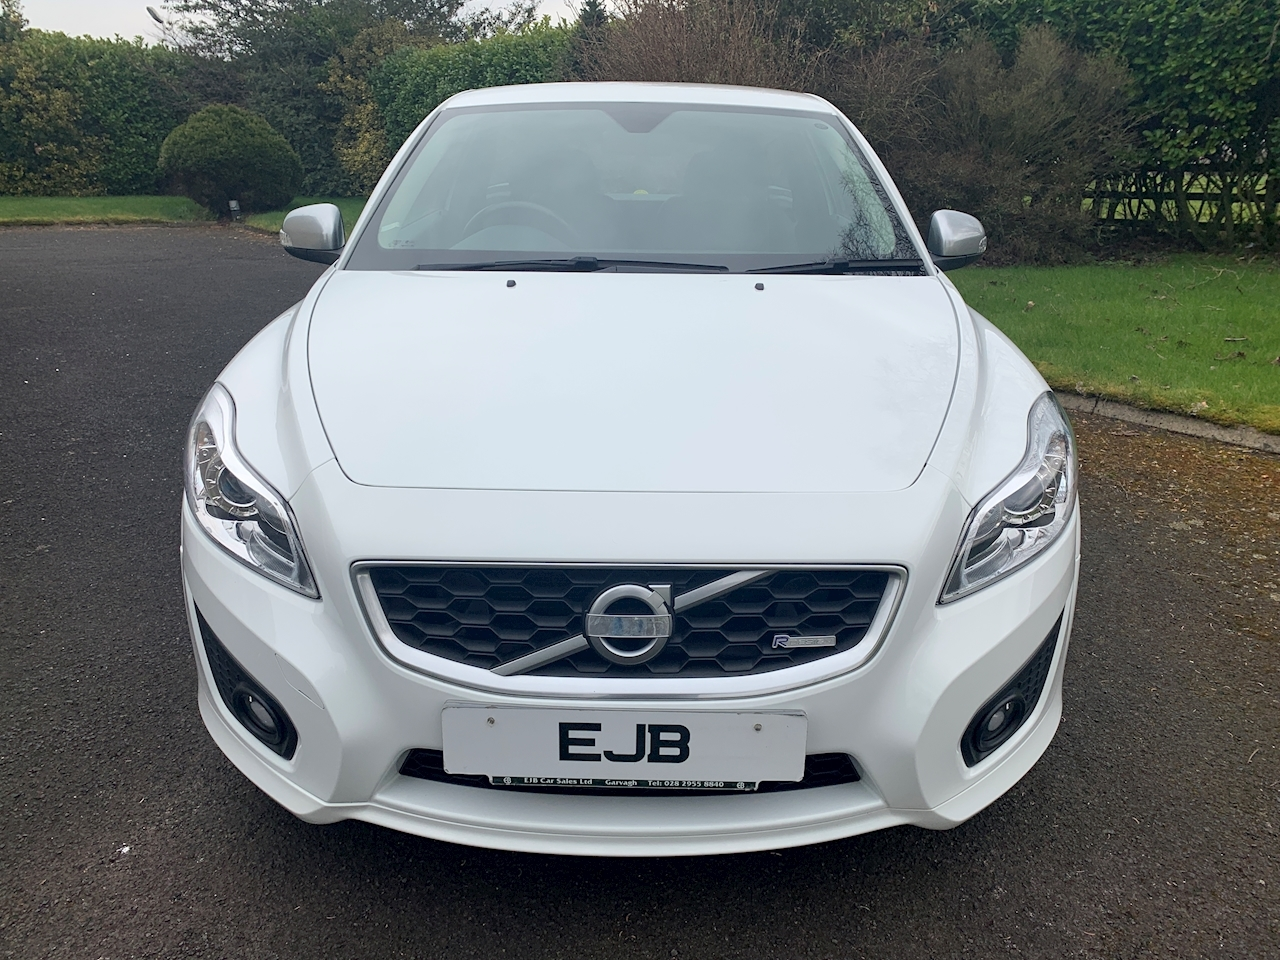 Volvo C30 R-Design Hatchback 2.0 Manual Petrol